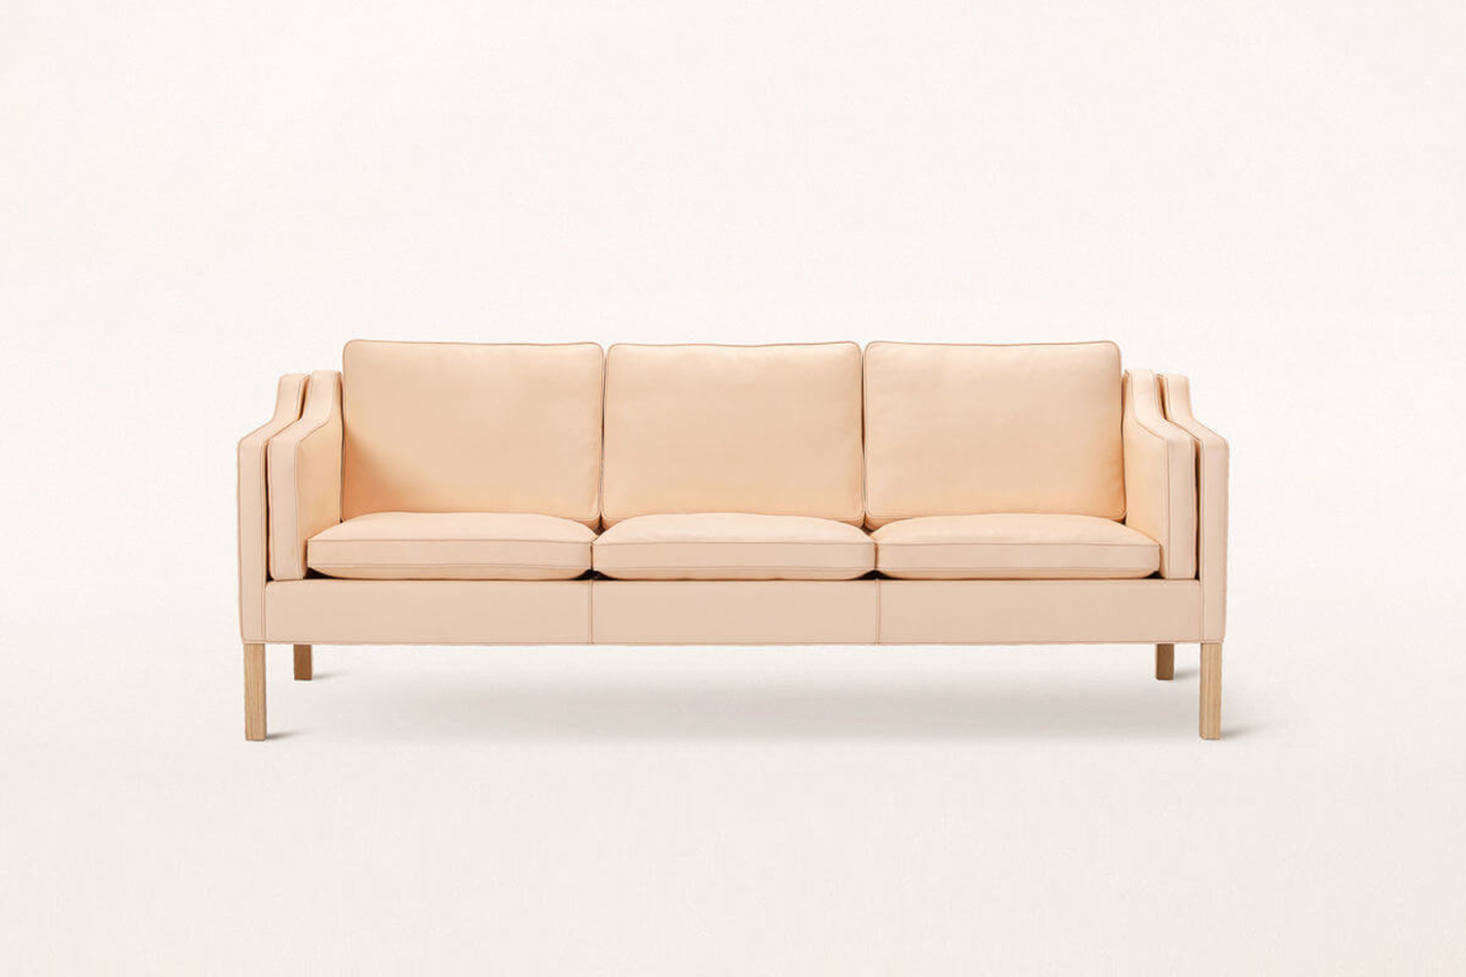 """The """"if I won the lotto"""" sofa for a few of us on the Remodelista team: designerBørge Mogensen's 2213 Three-Seater Sofa in vegetable-tanned leather (it's also available in upholstery fabric and other leathers). Designed in 1962 and still in production via Frederica Furniture, you can find the sofa for CA $22,295 at Mjölk in Toronto."""